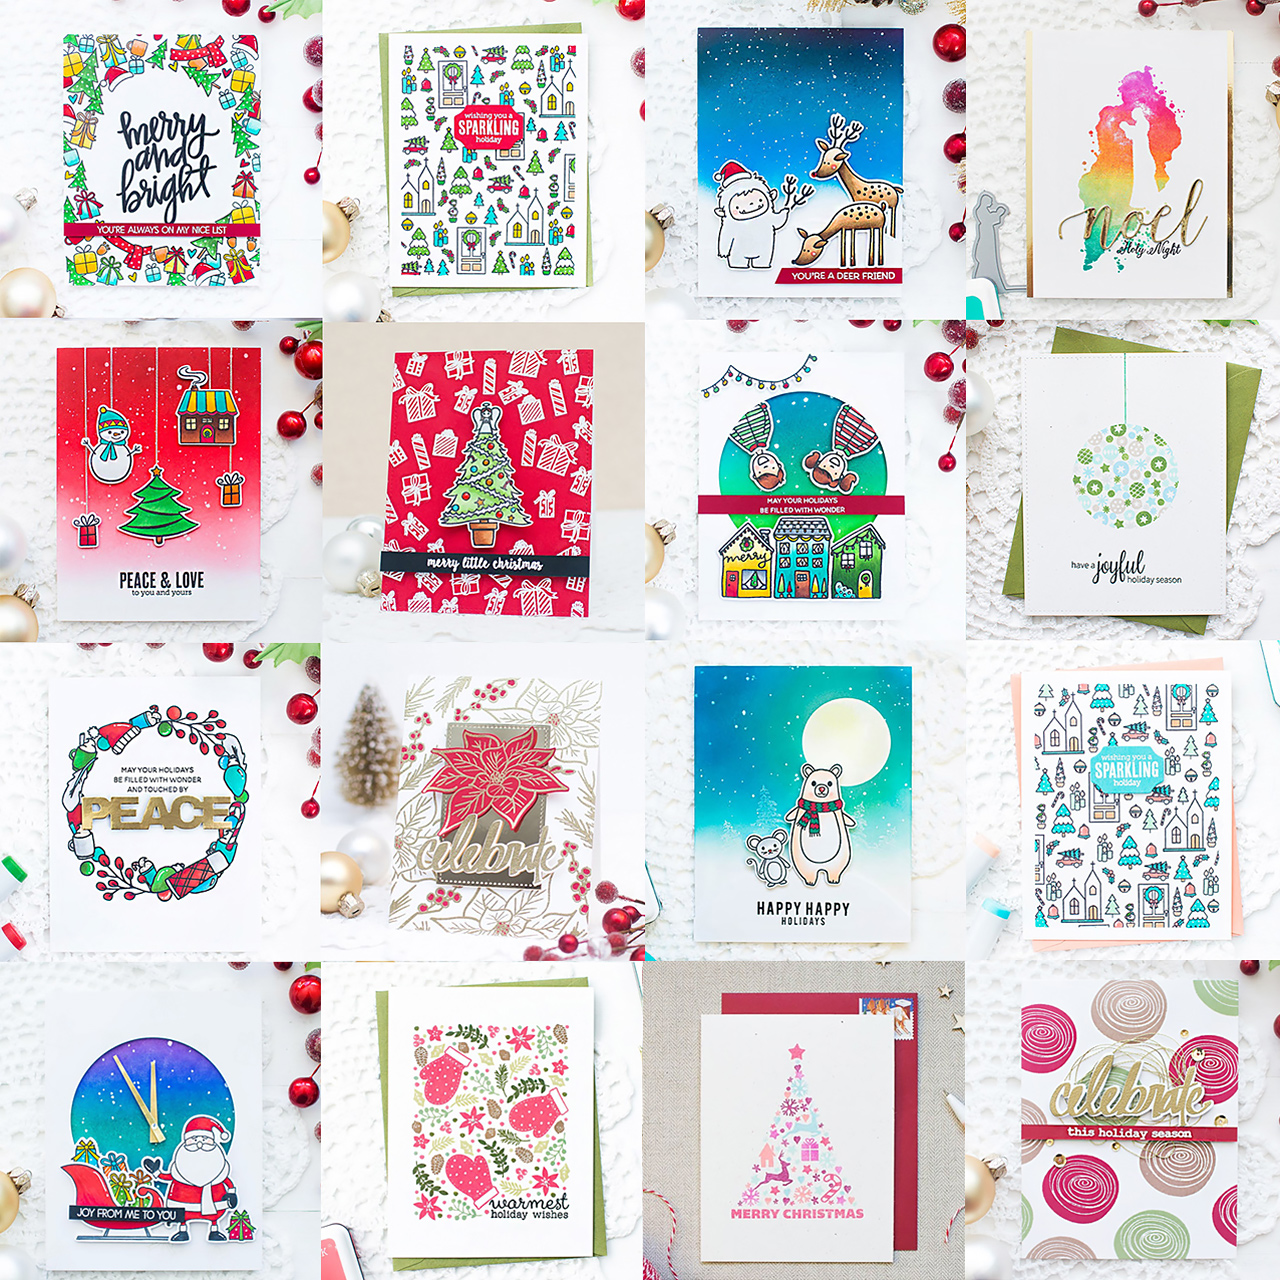 diy-christmas-cardmaking-ideas-with-36-projects